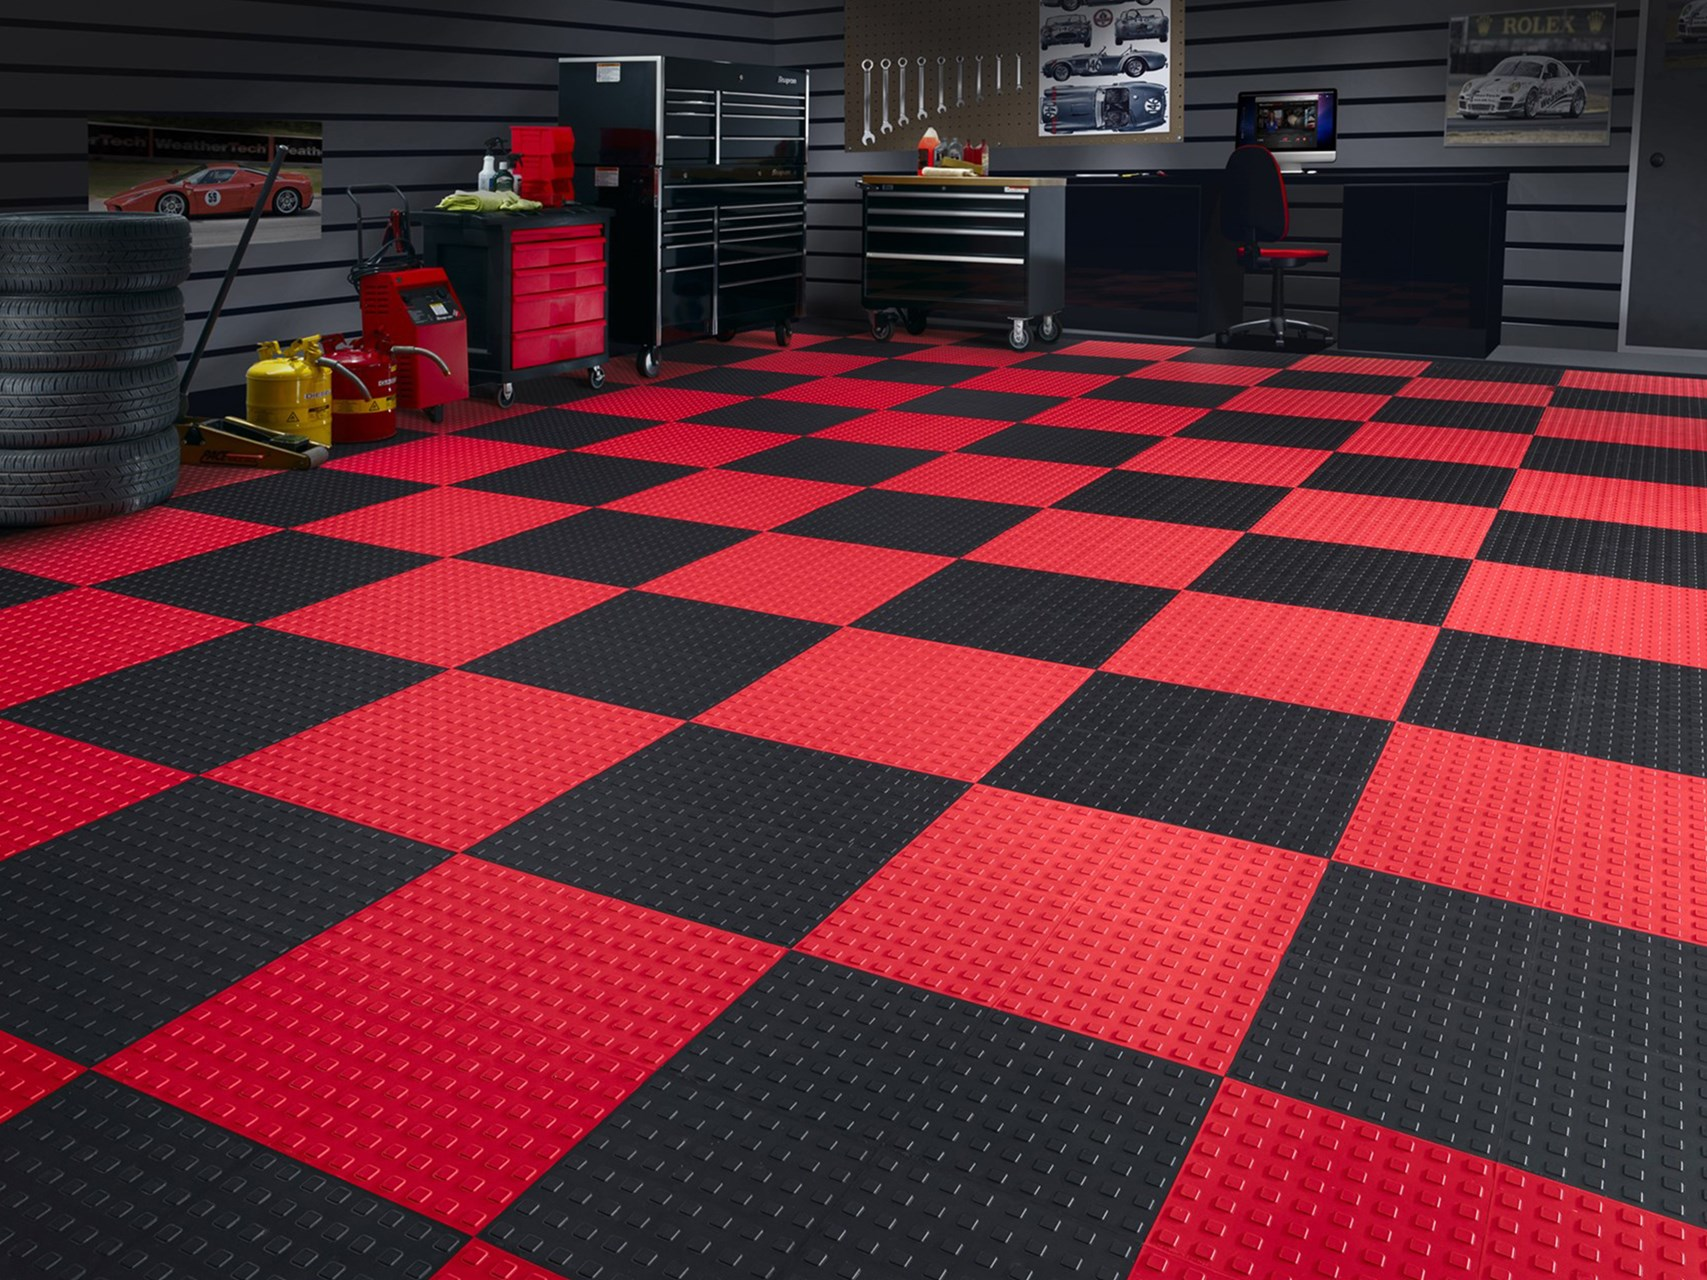 TechFloor WeatherTech - Garage floor tracks